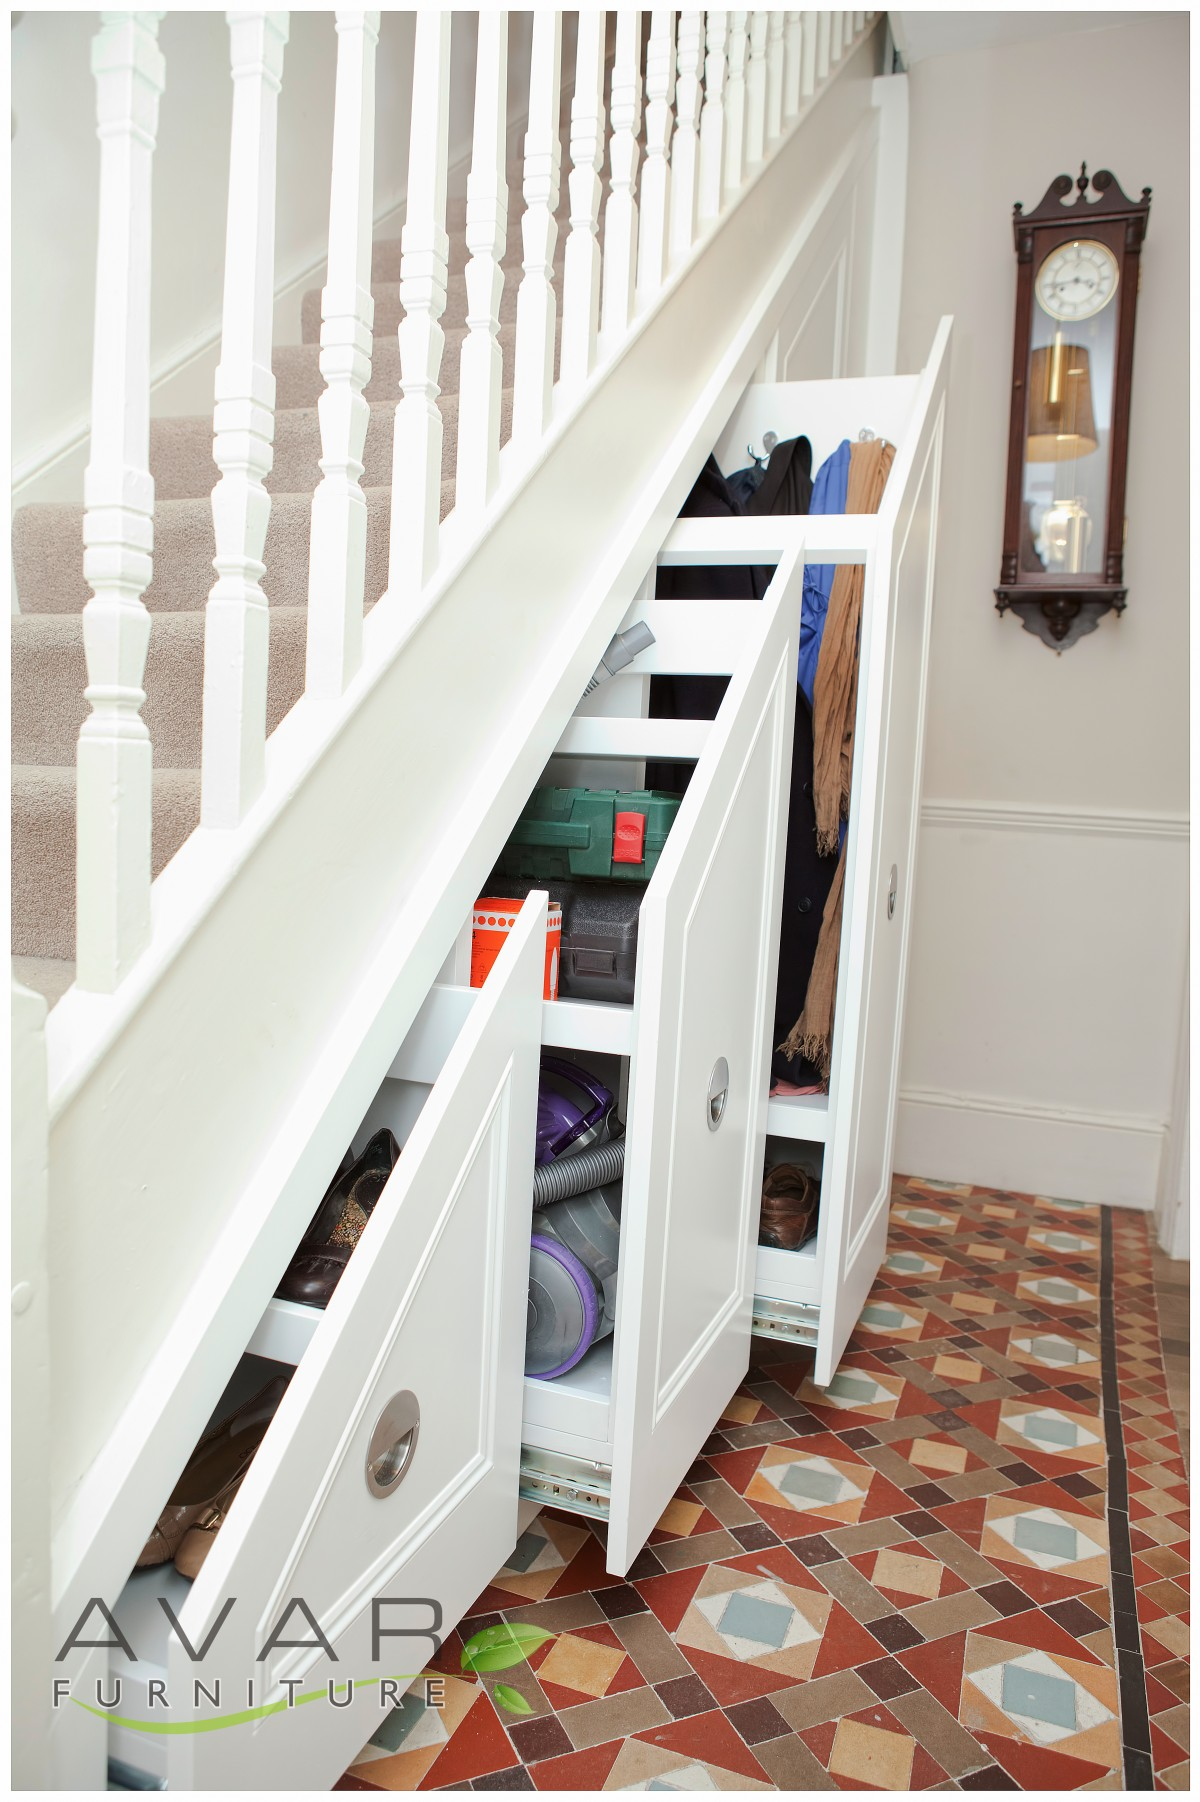 ƸӜƷ Under stairs storage ideas / Gallery 13 | North London, UK ...